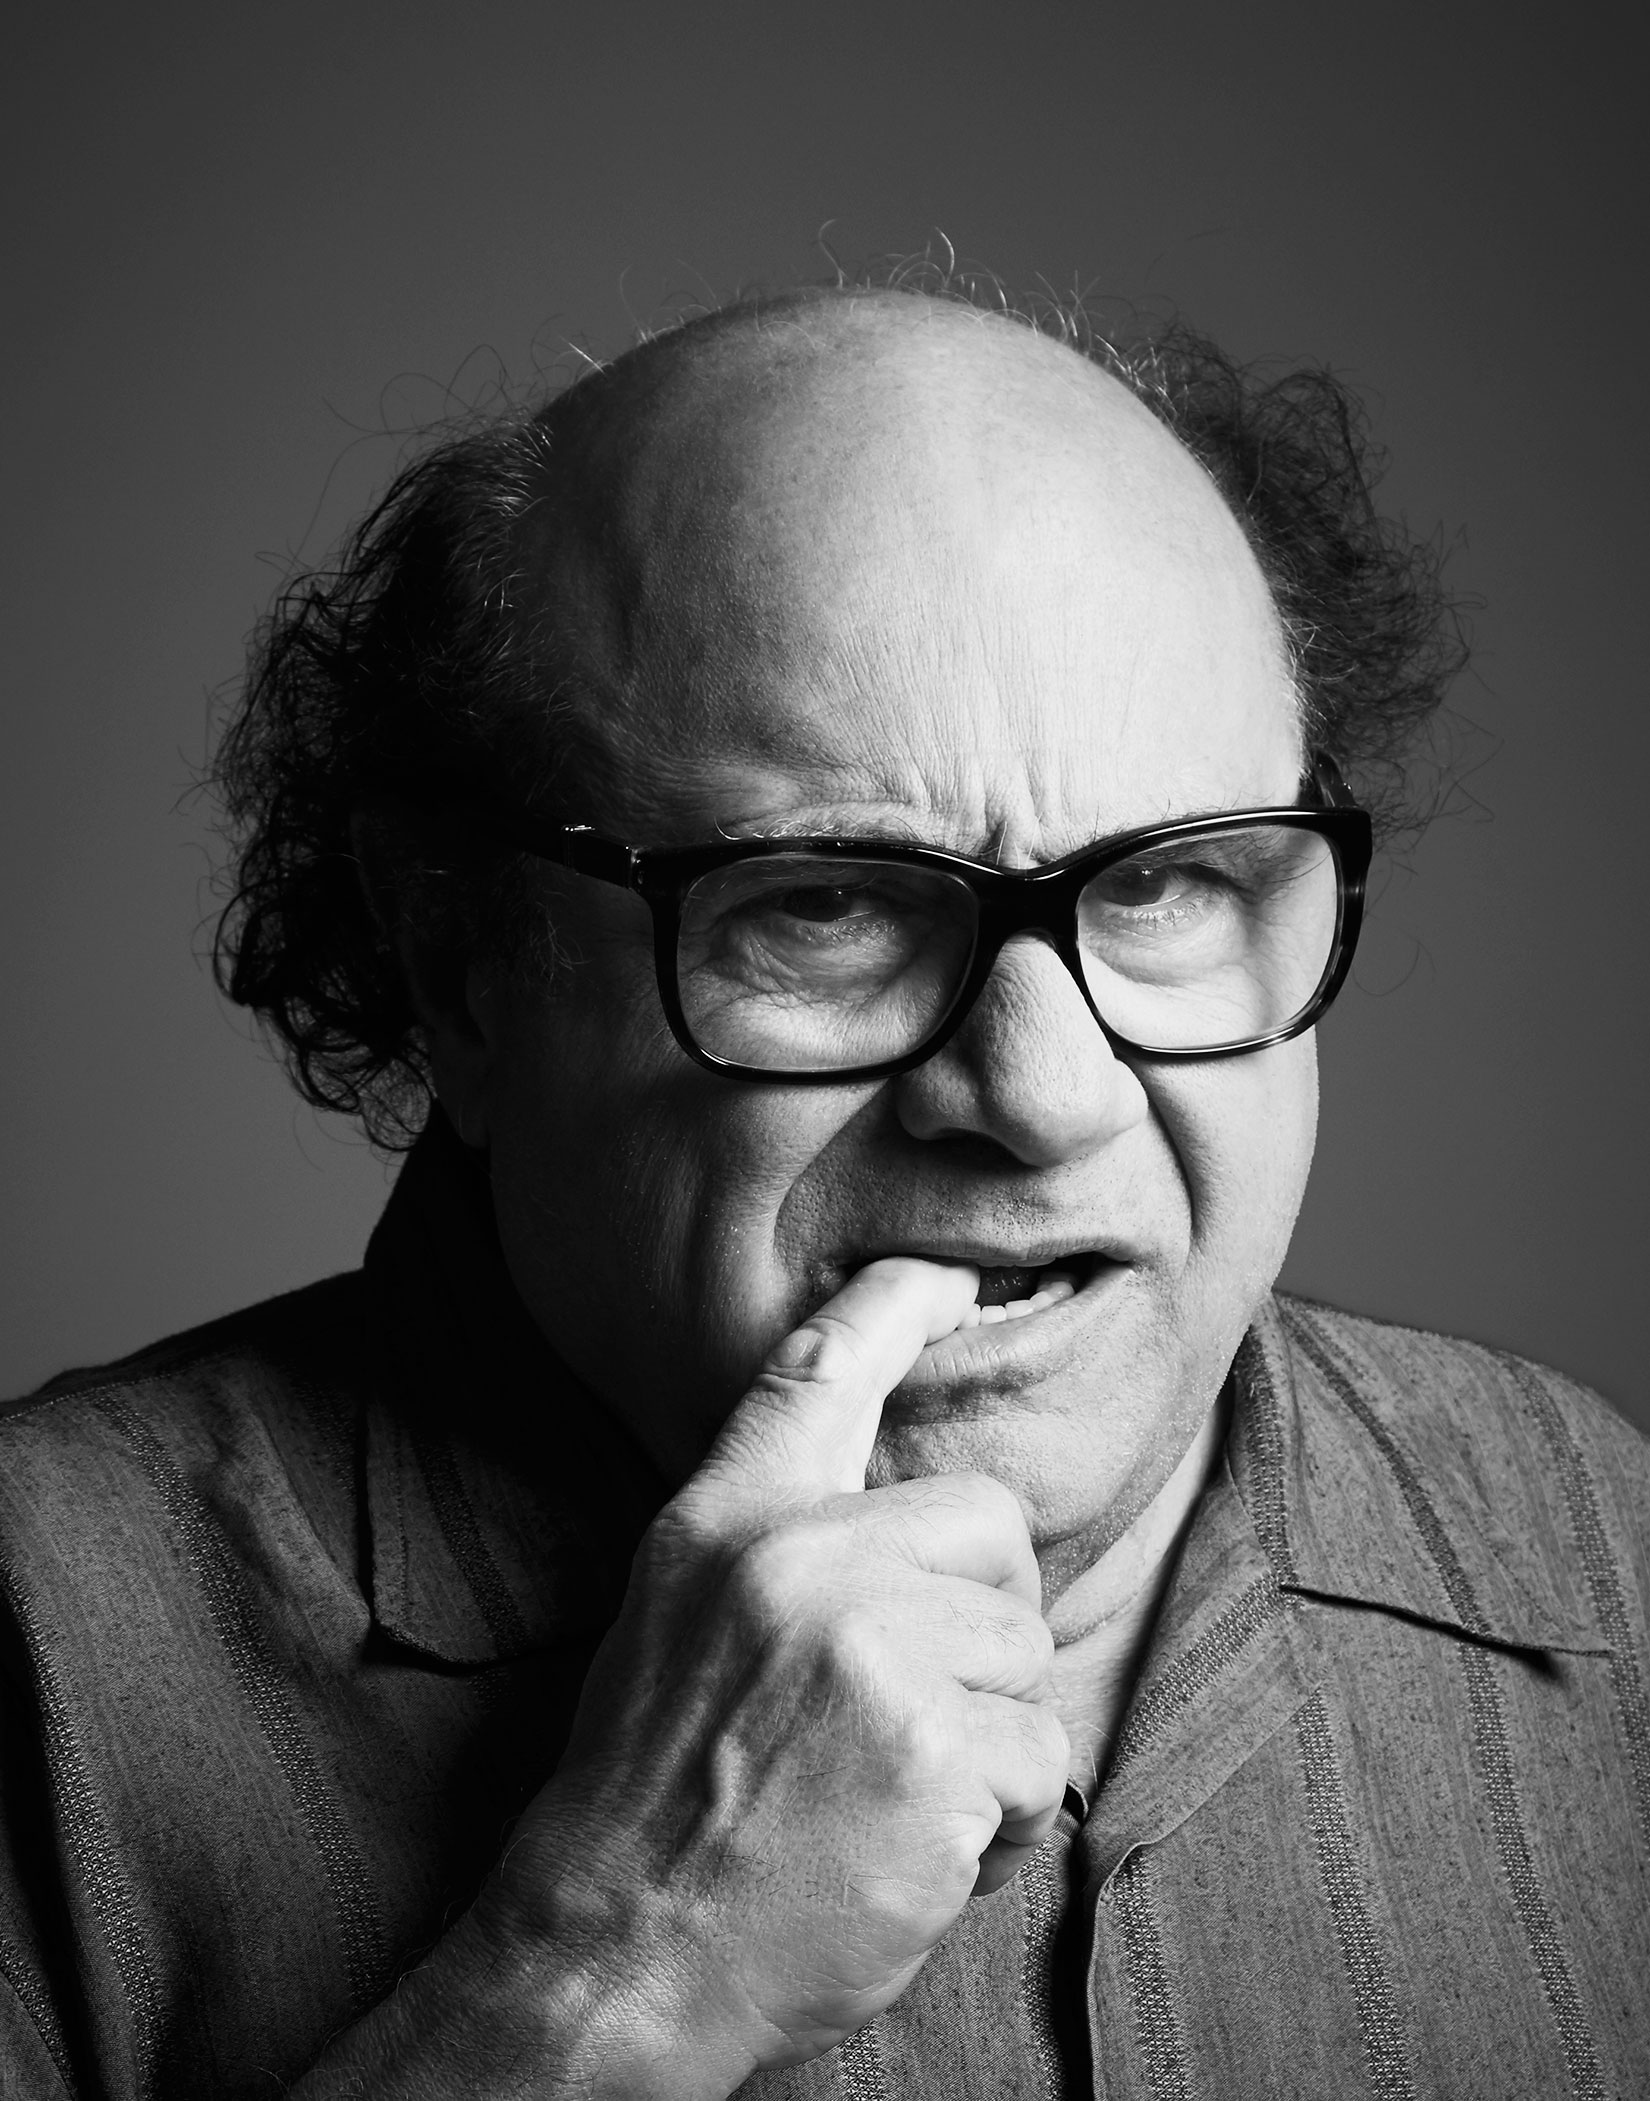 danny-devito-by-robert-ascroft